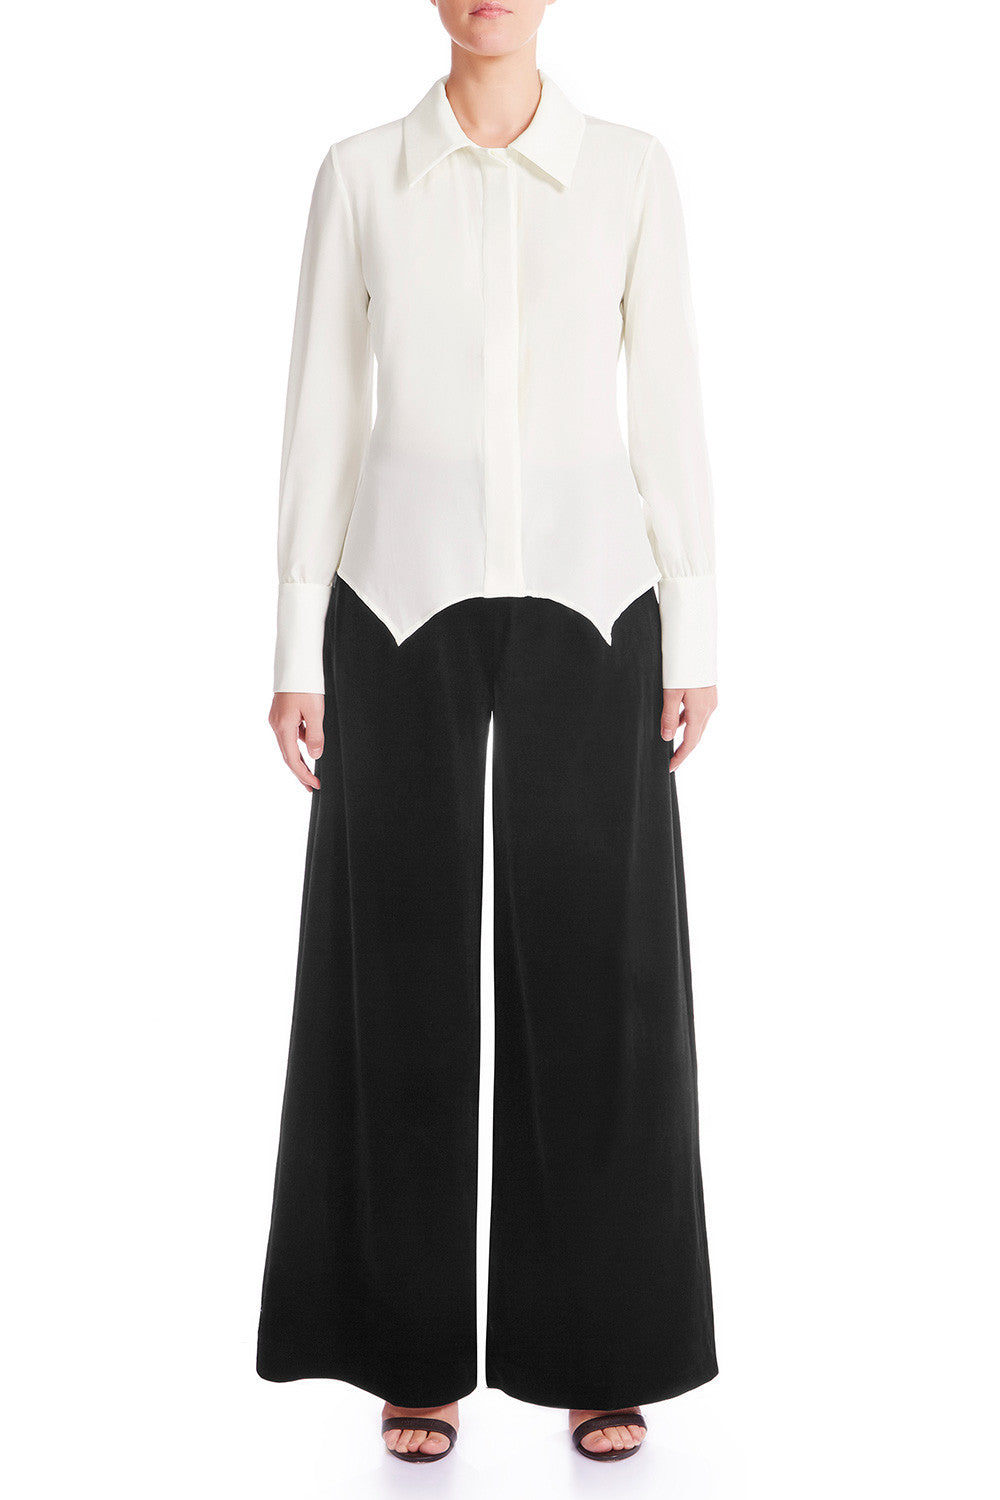 JANEL Silk Crêpe De Chine Shirt - IVORY | HAUS OF SONG